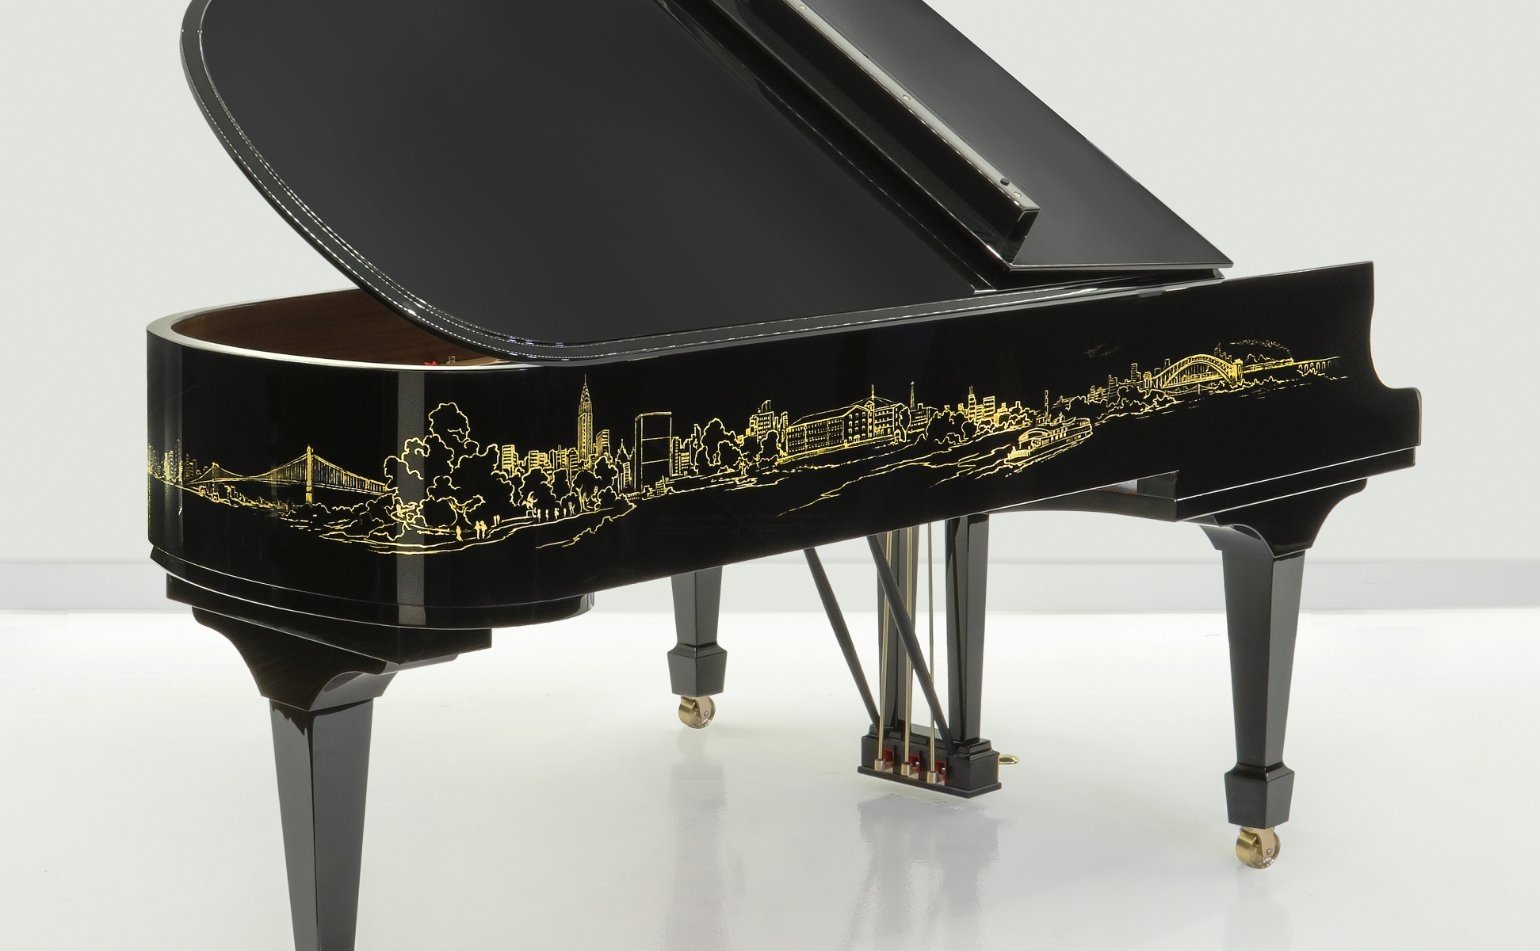 close-up of bass side of the Steinway Skyline grand piano